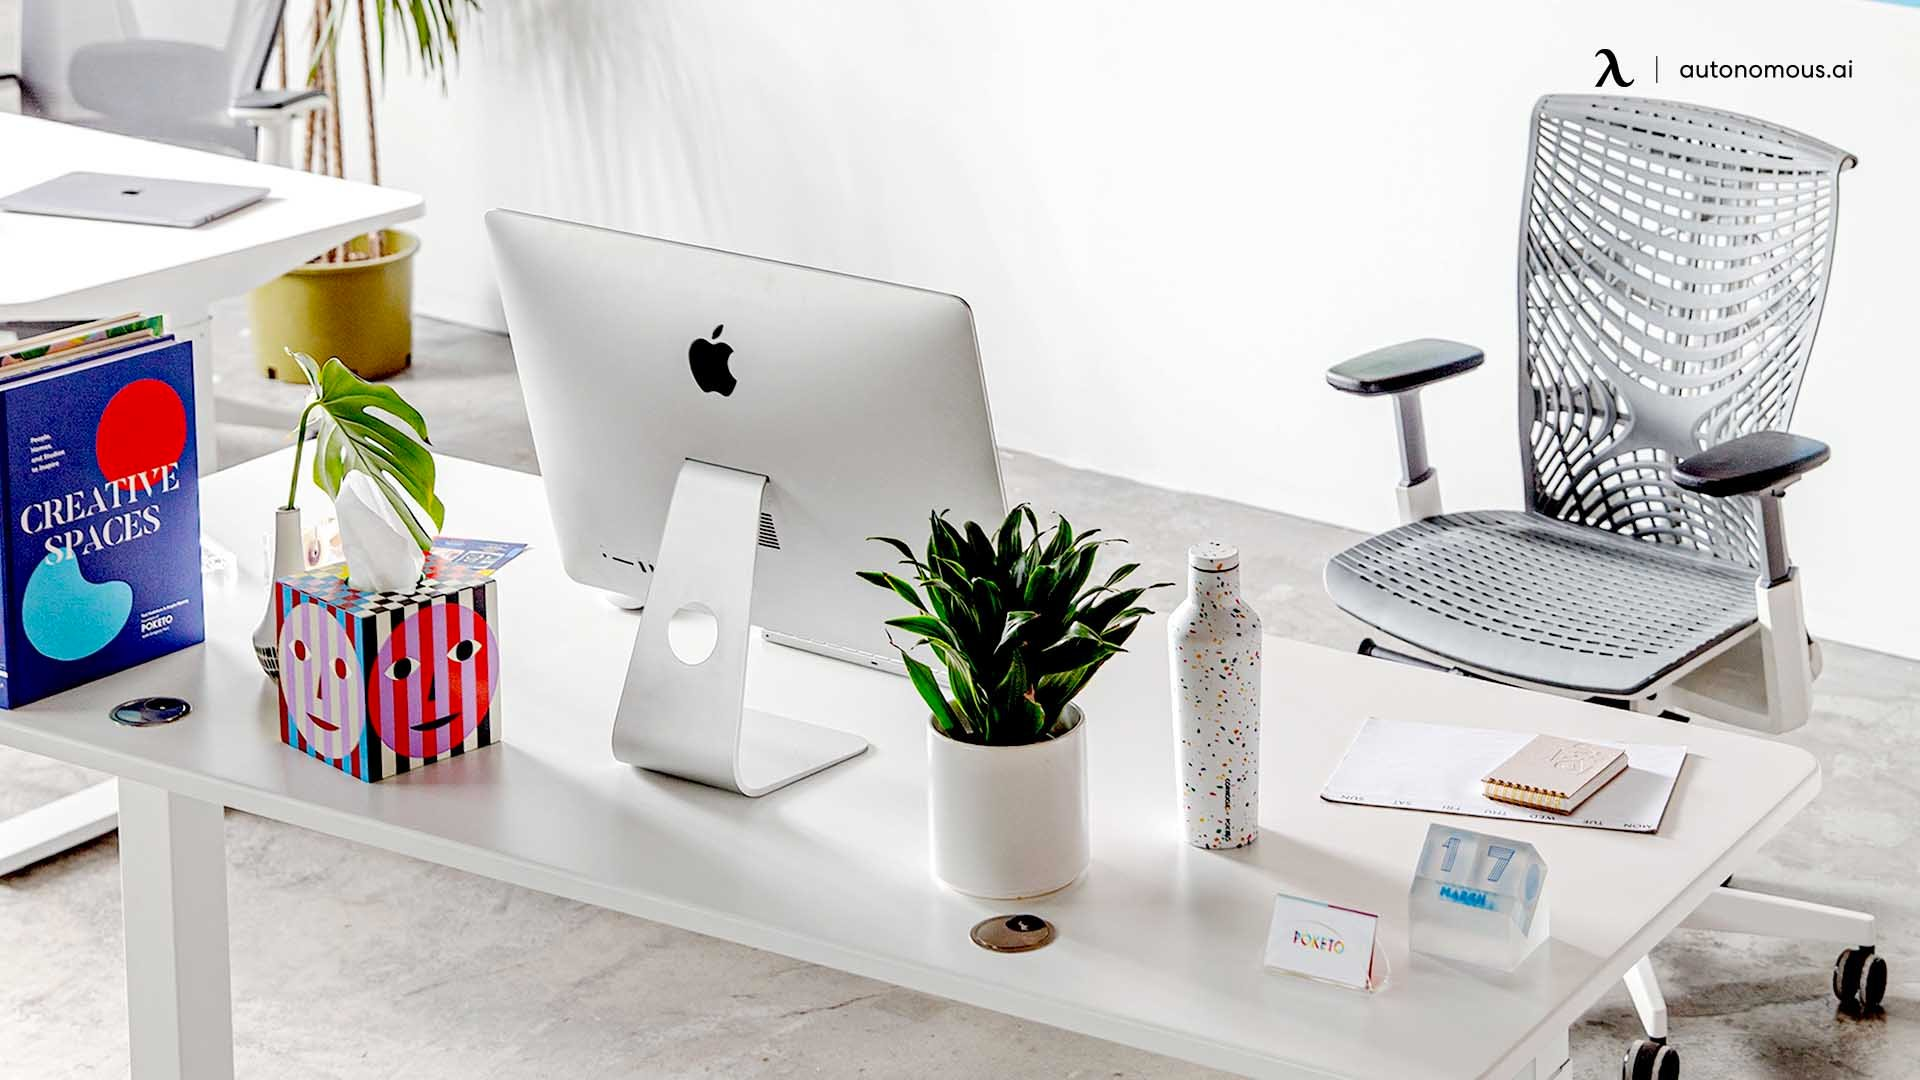 What Kind of Desk is Best for Productivity?